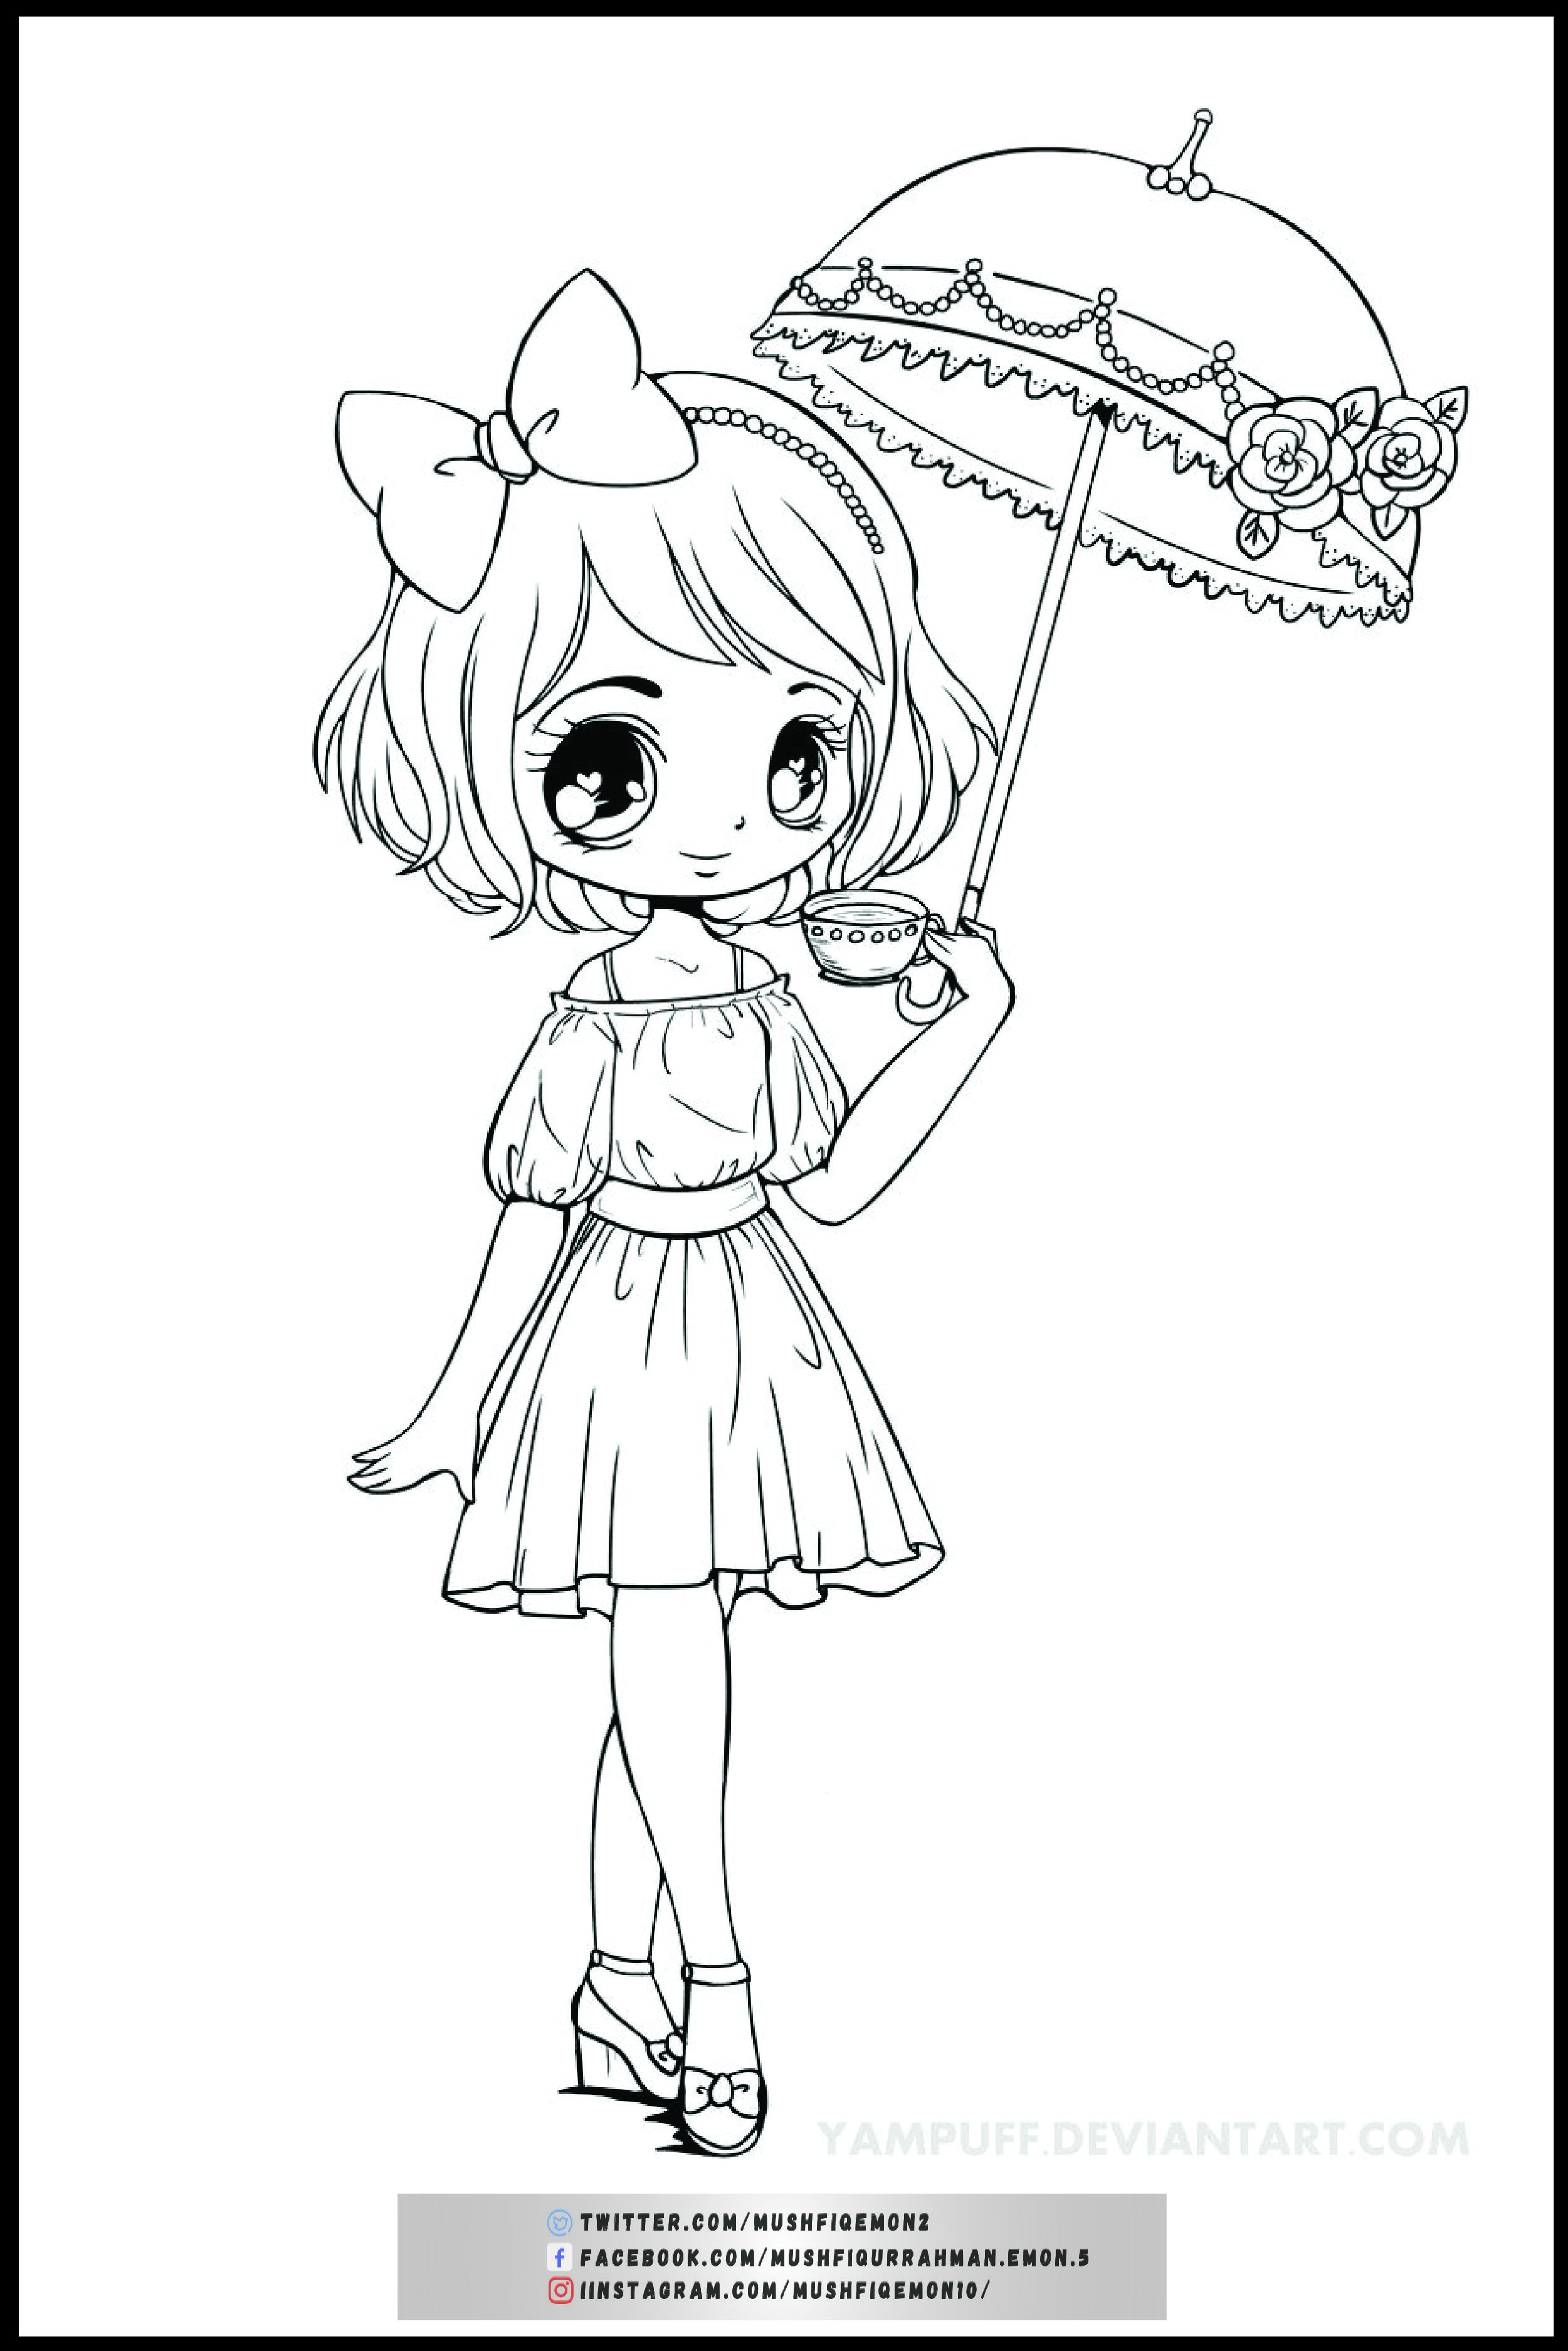 Mushfiqemon I Will Make Coloring Book Page For Kids And Adults For 5 On Fiverr Com In 2021 Chibi Coloring Pages Cute Coloring Pages Coloring Pages [ 3750 x 2501 Pixel ]